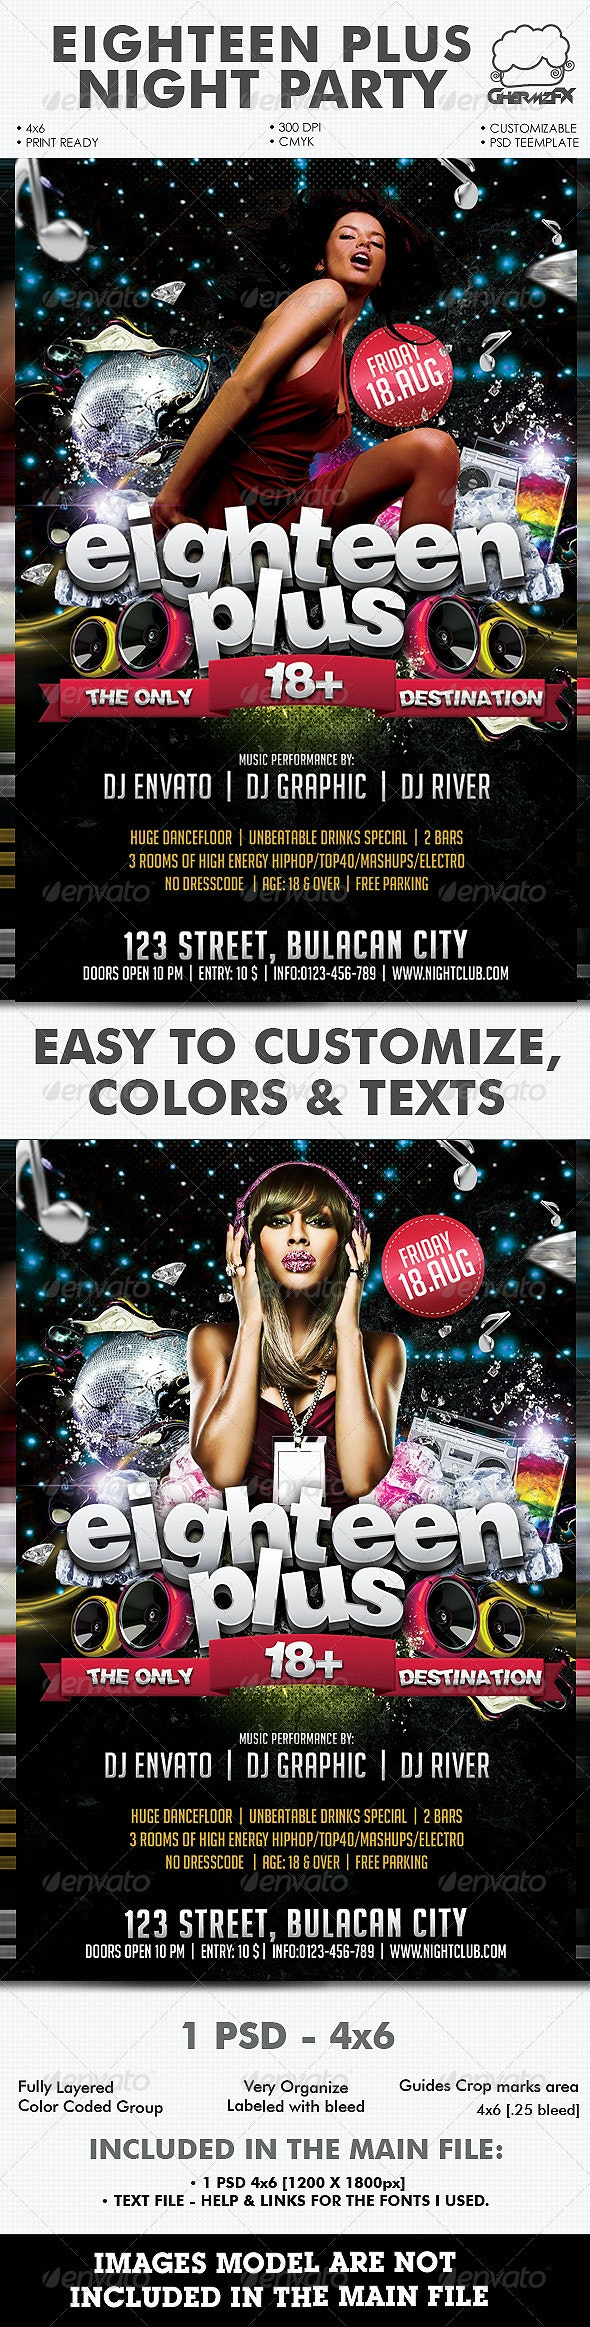 Eighteen Plus Night Party Template - Clubs & Parties Events